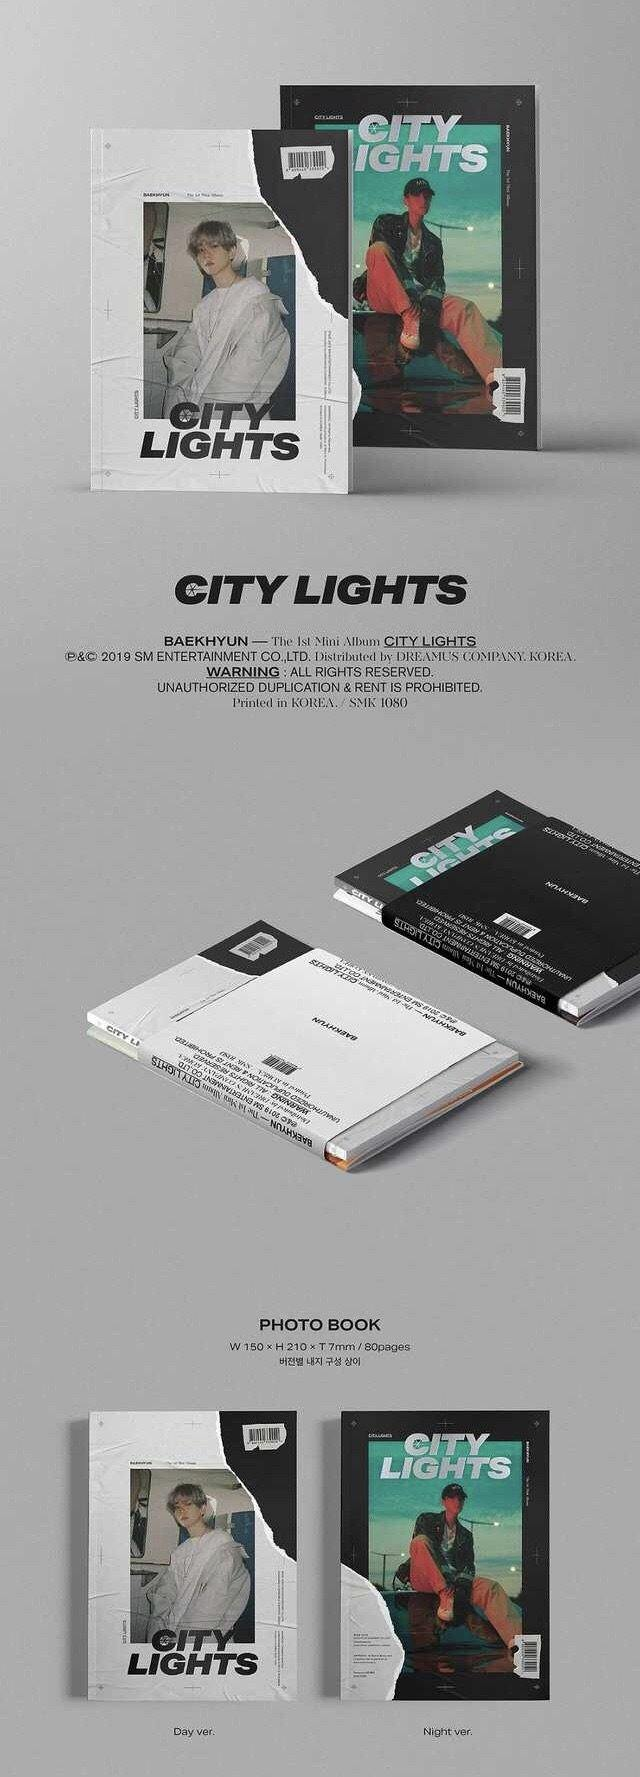 Baek Hyun - City Lights (Laden) - J-Store Online